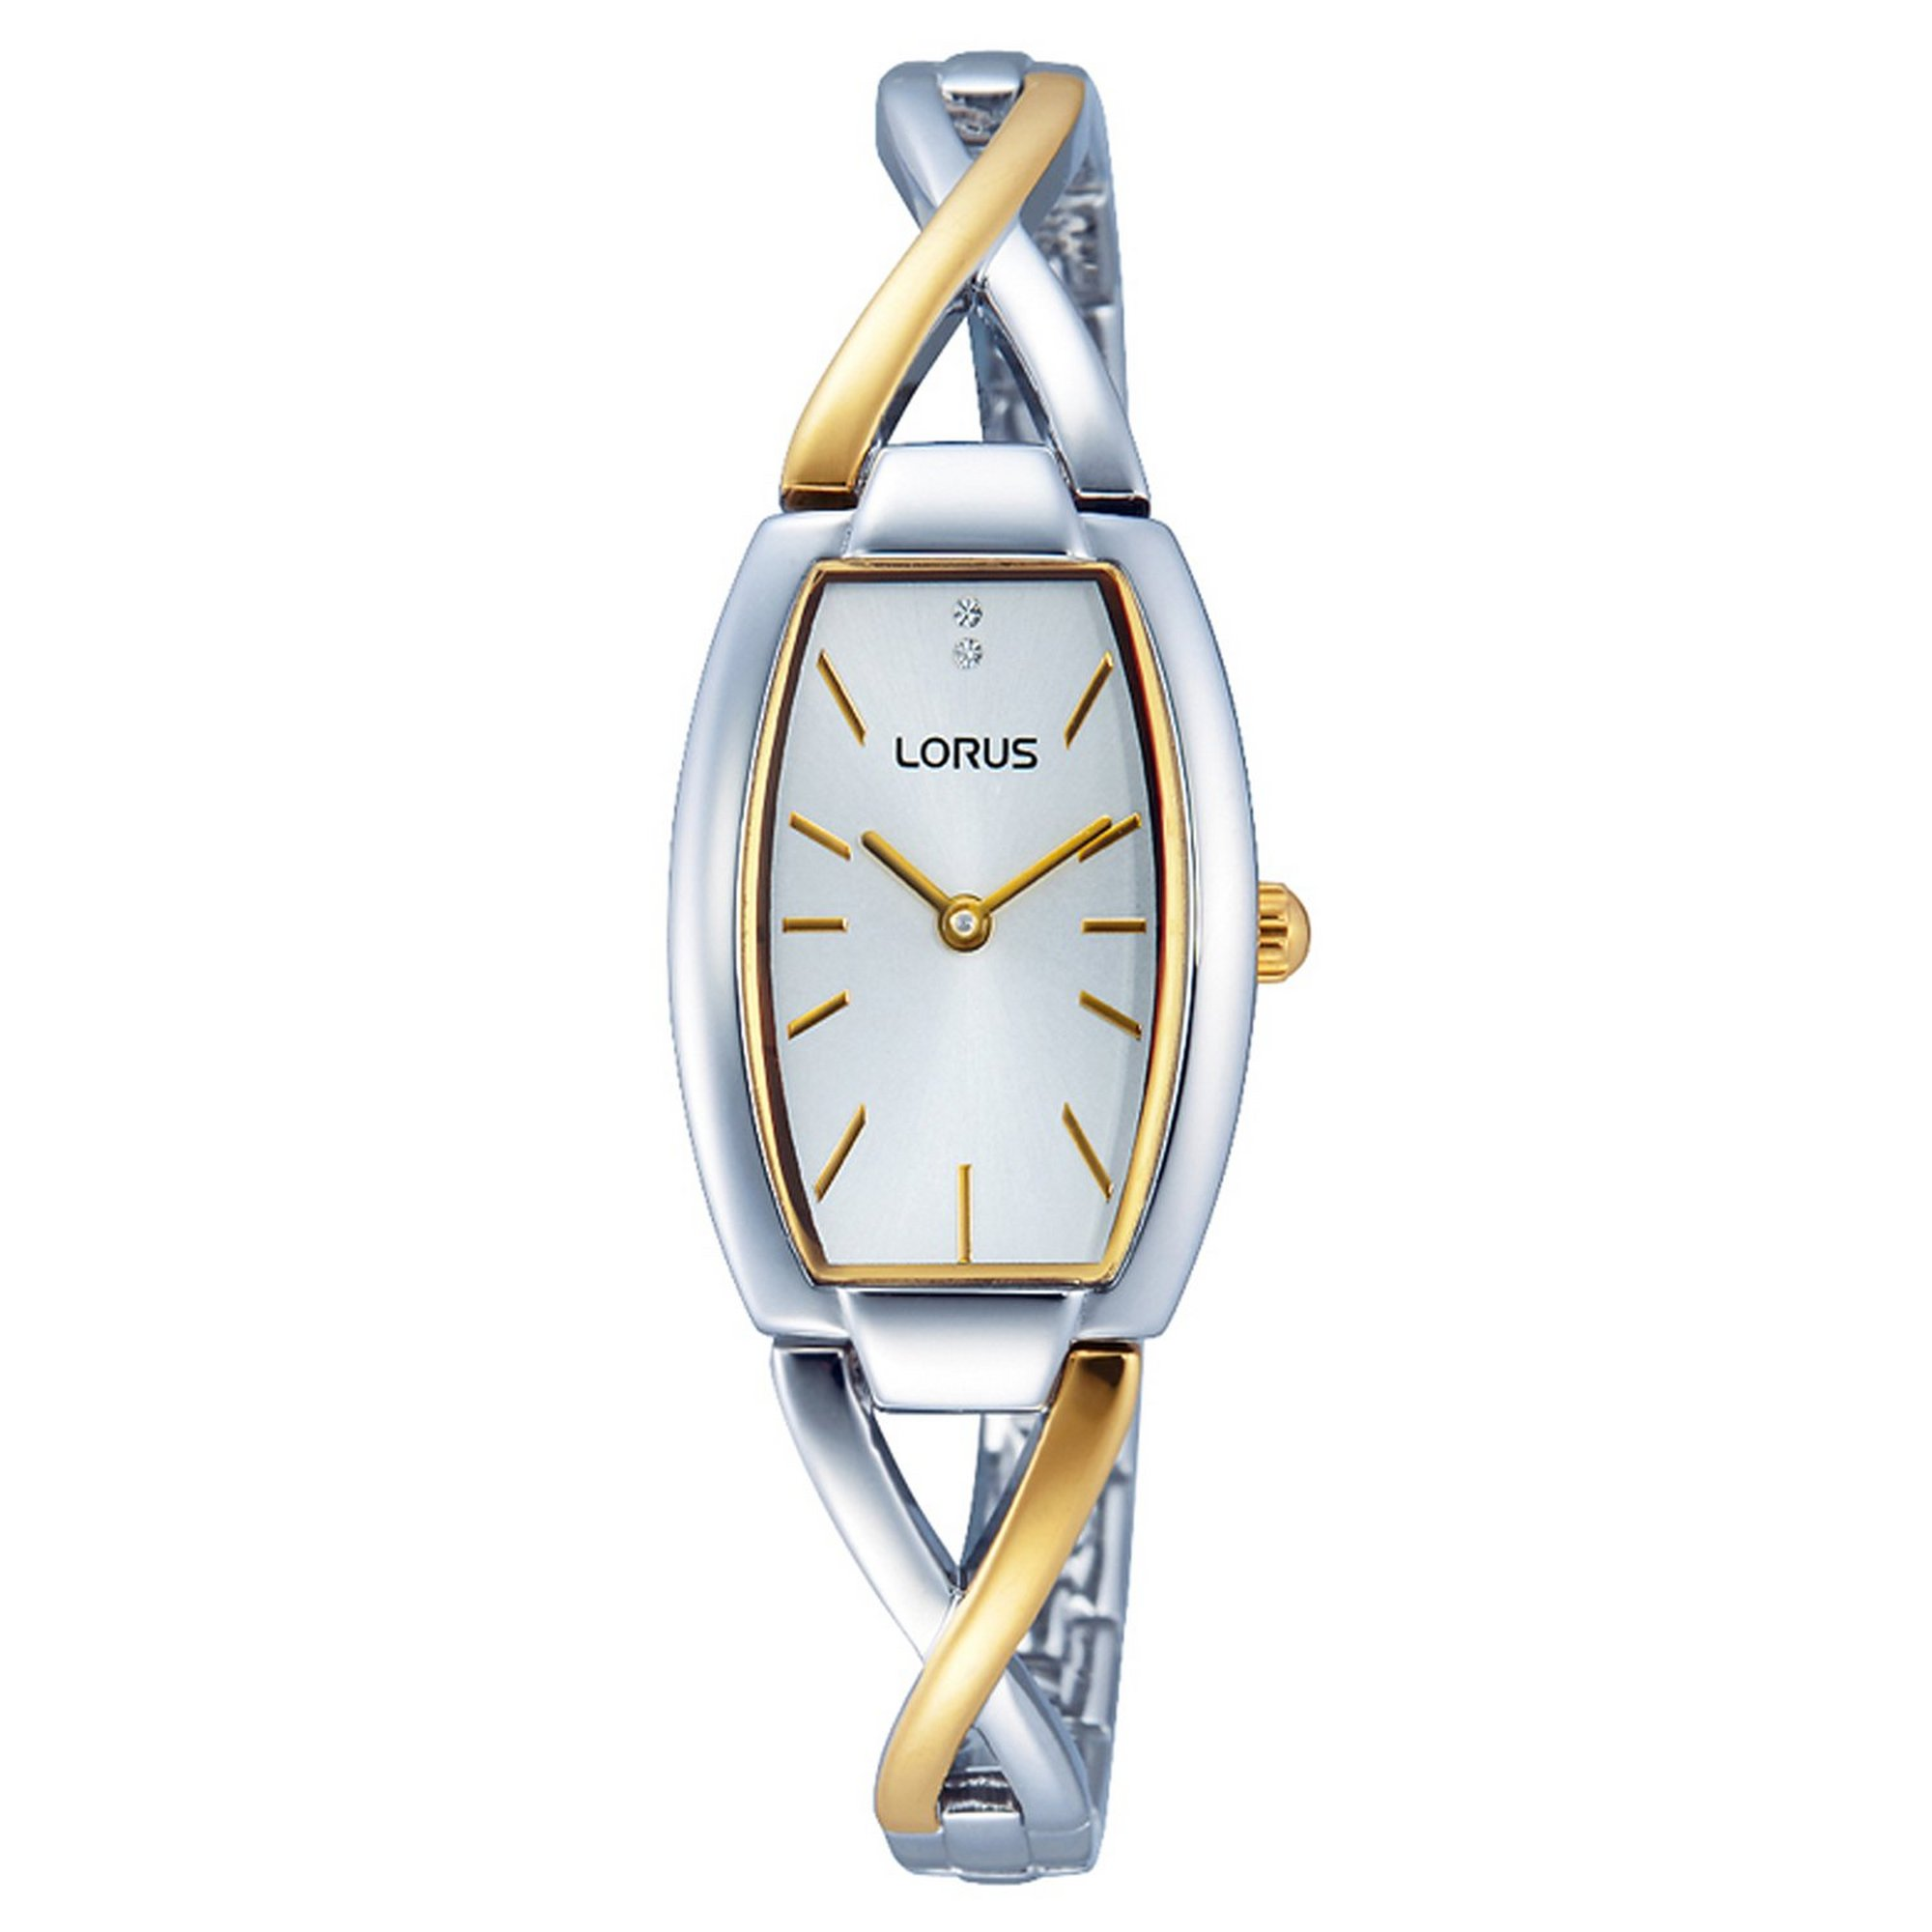 Image of Lorus Dress Watch with Two Tone Shaped Strap